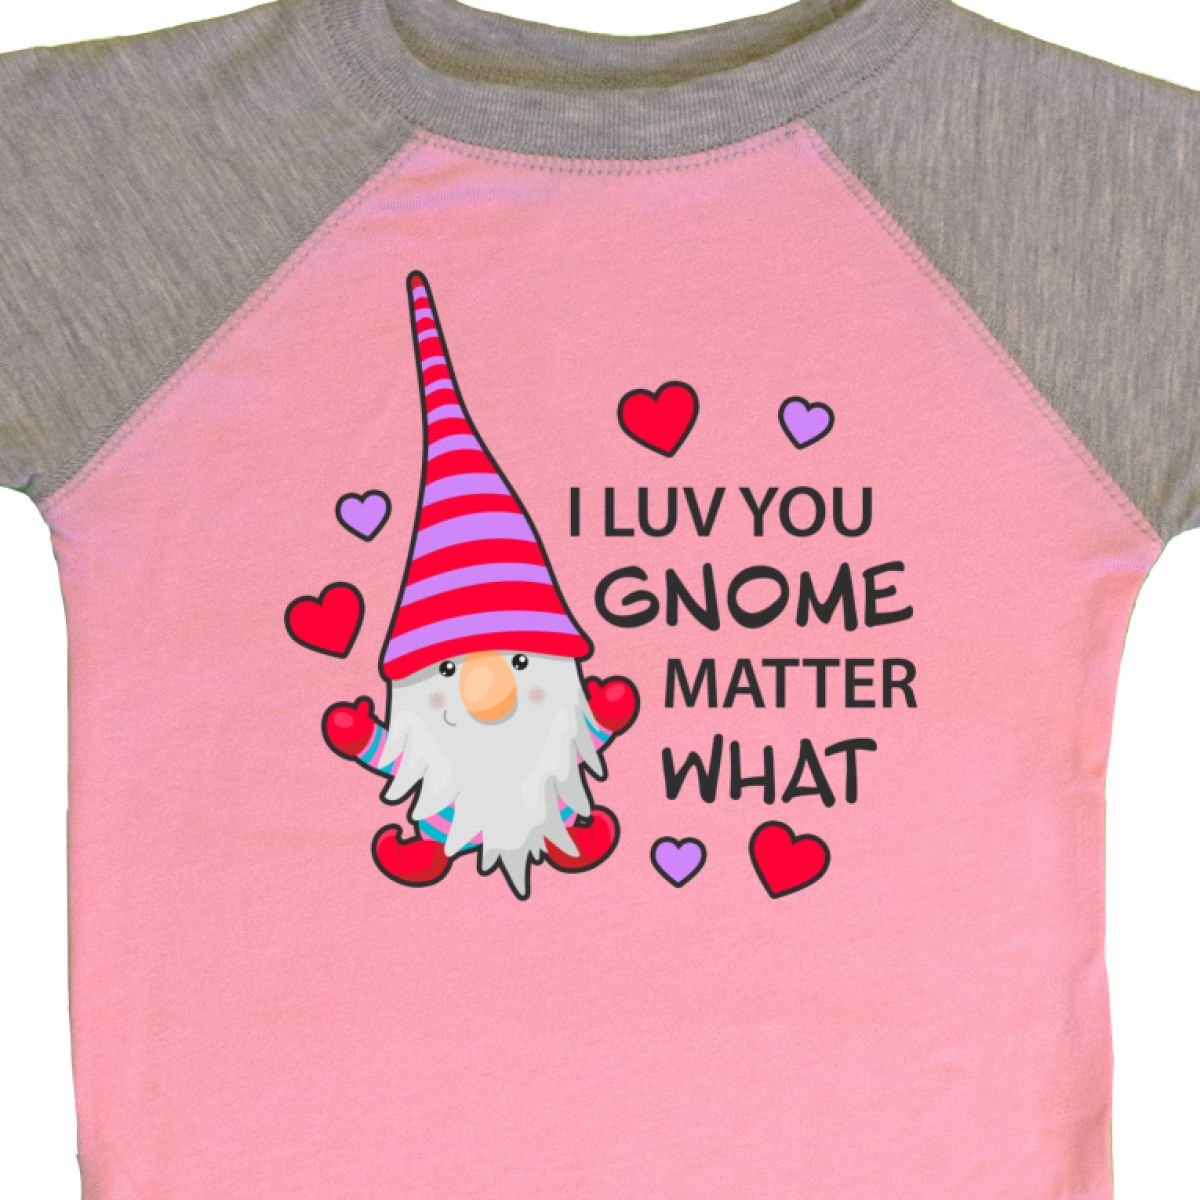 Inktastic-I-Luv-You-Gnome-Matter-What-With-Gnome-And-Hearts-Infant-Creeper-Love 縮圖 20